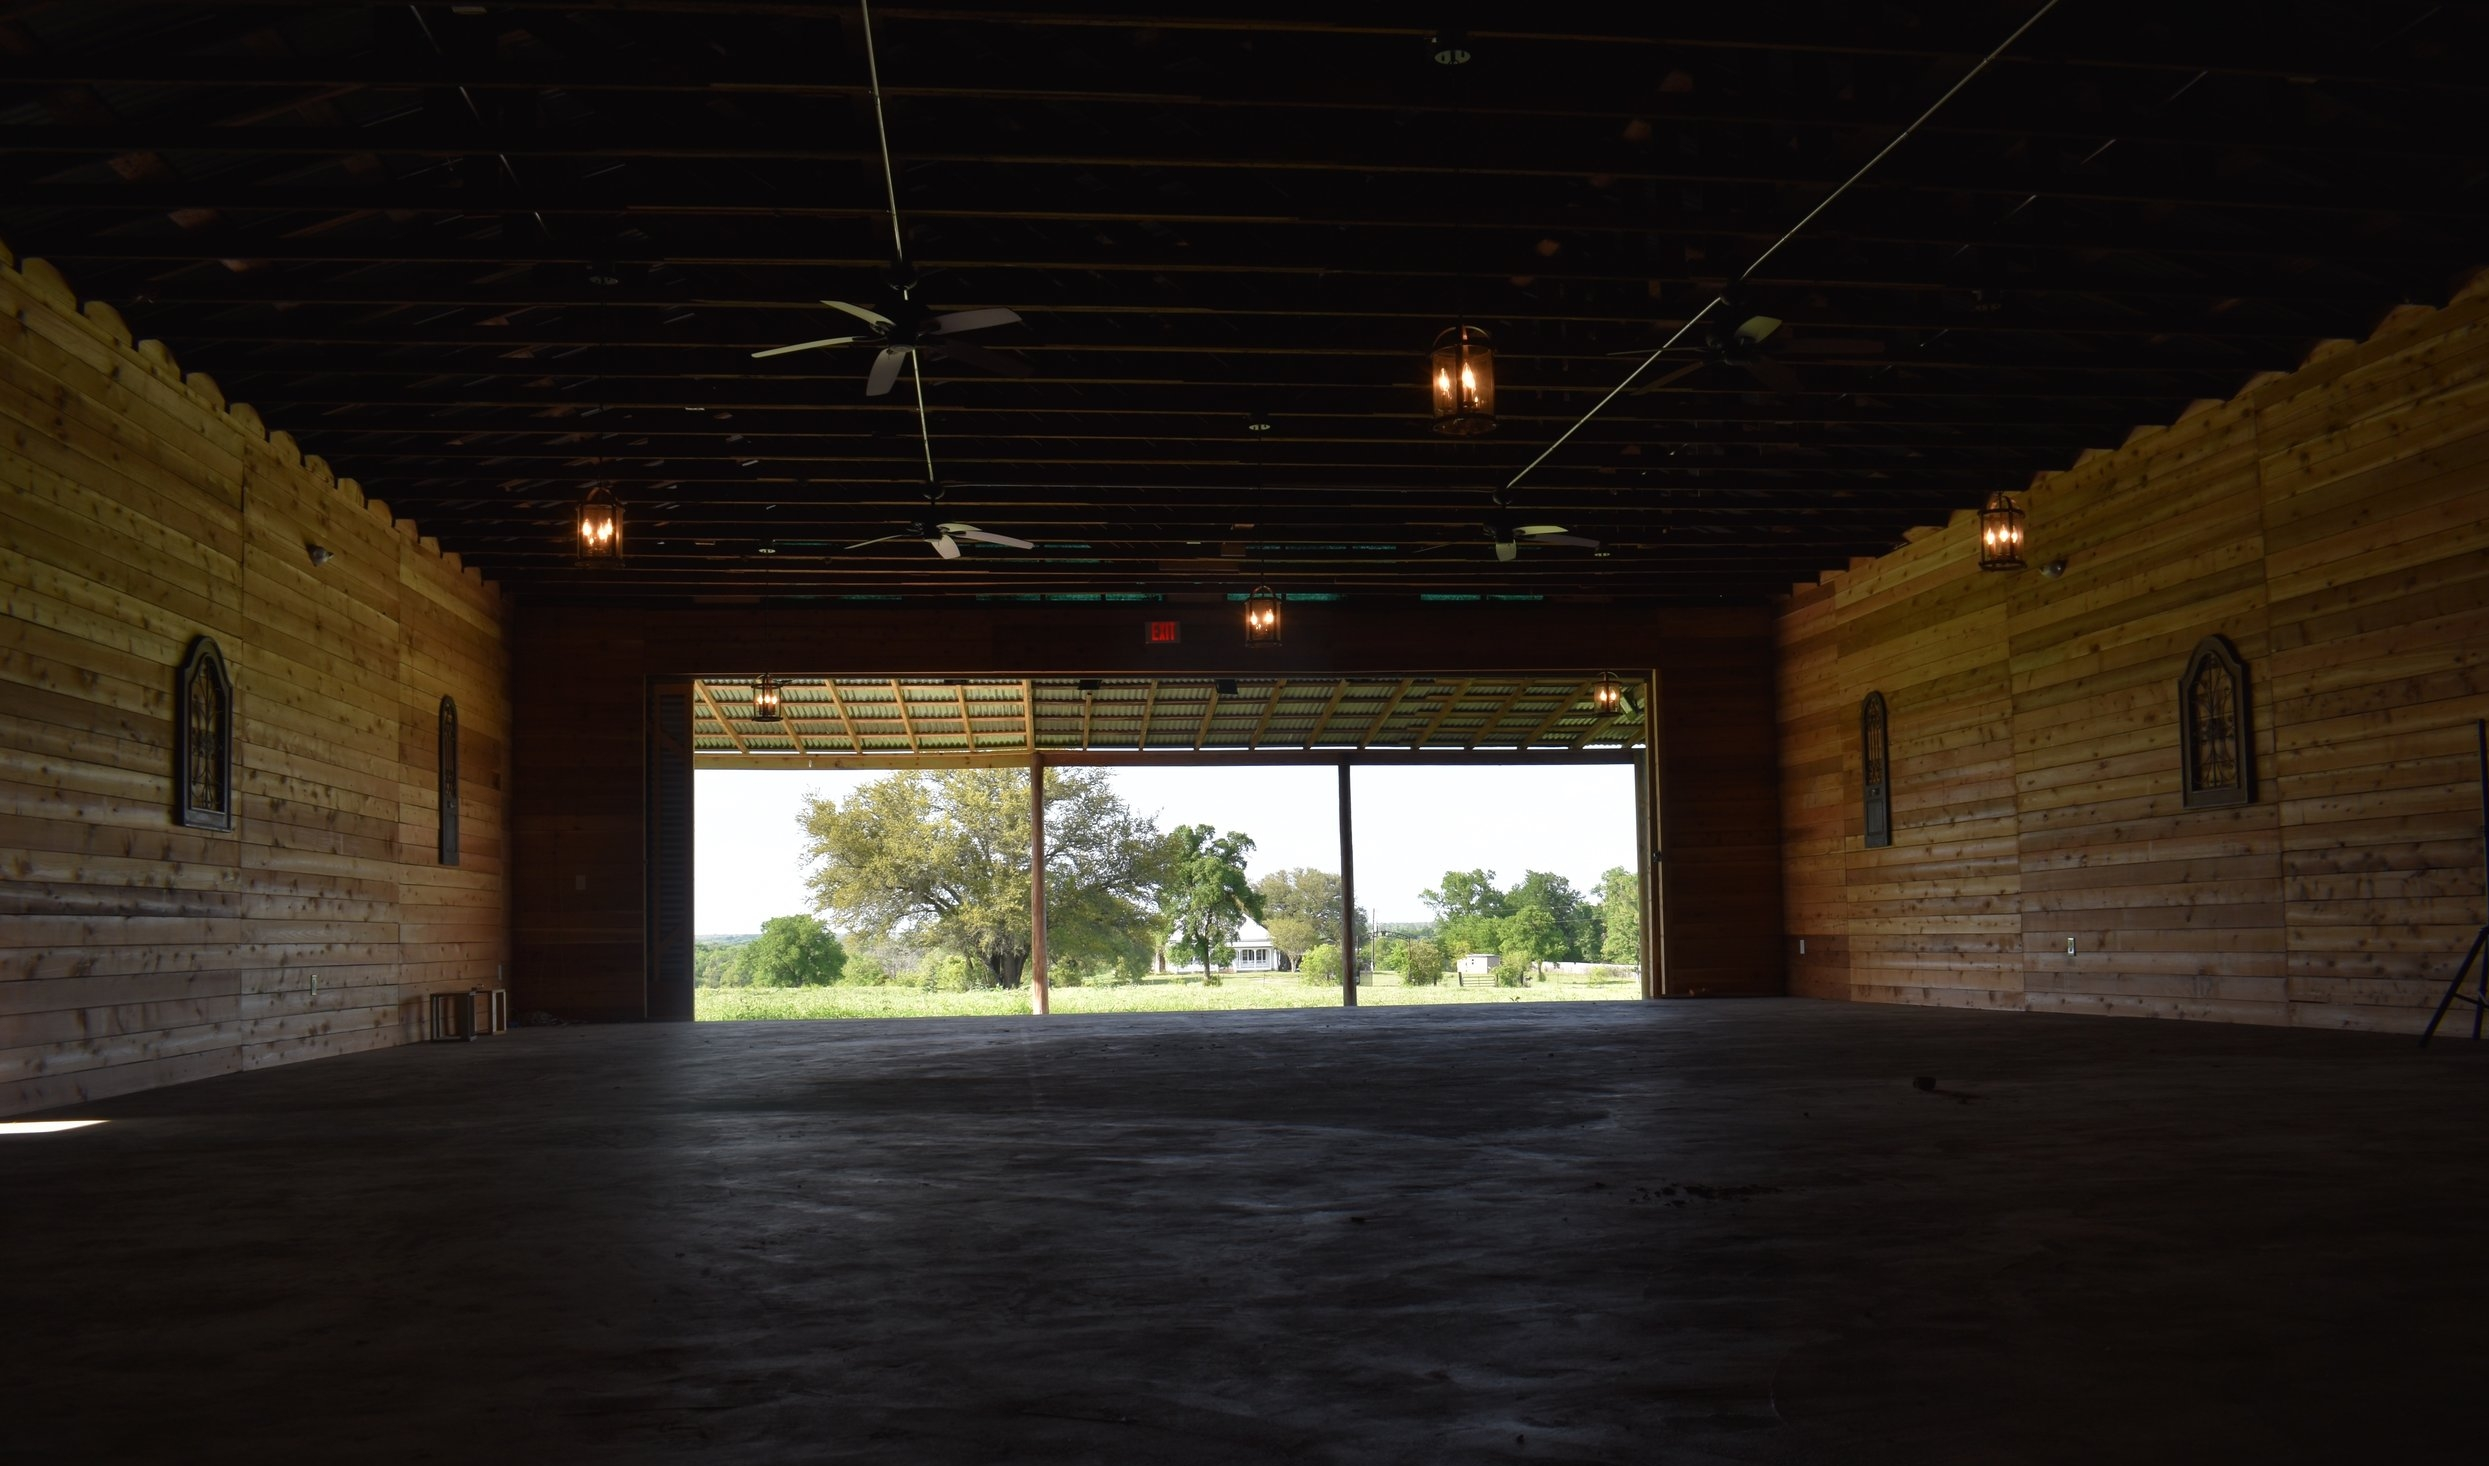 Ceremony Barn with Sliding Doors Fully Open. Provides Beautiful View of House.